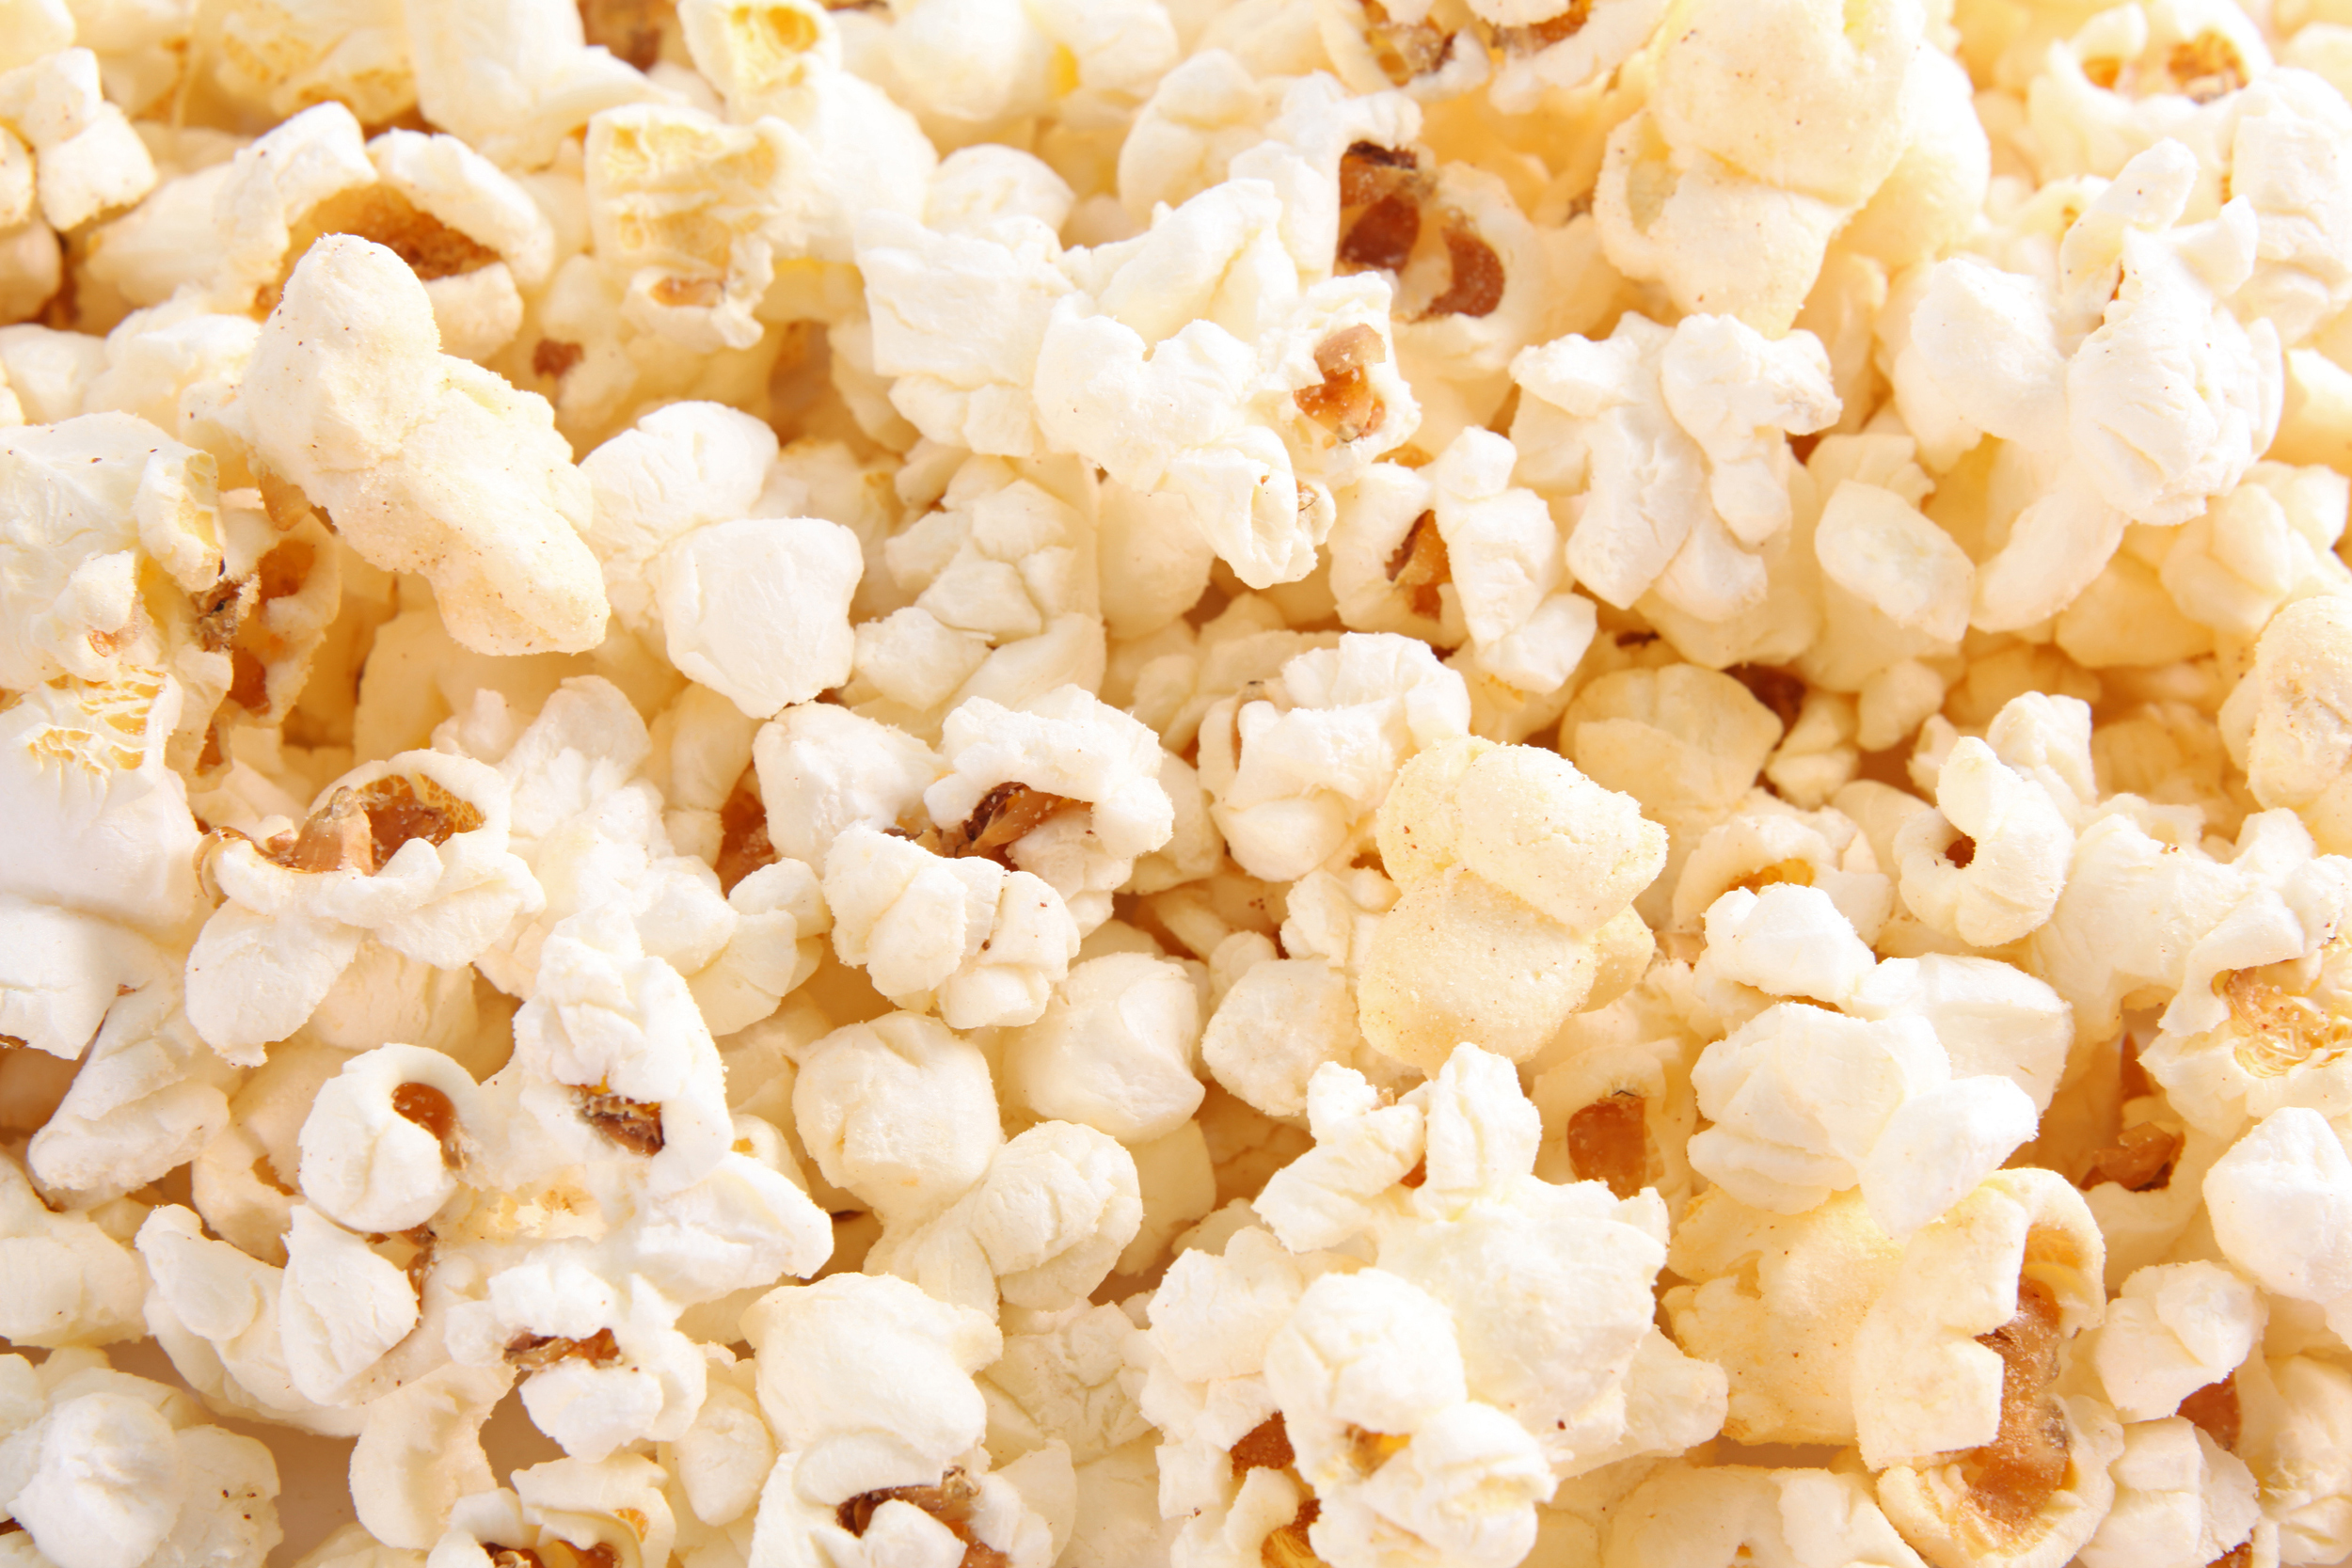 Popcorn Wallpapers High Quality Download Free